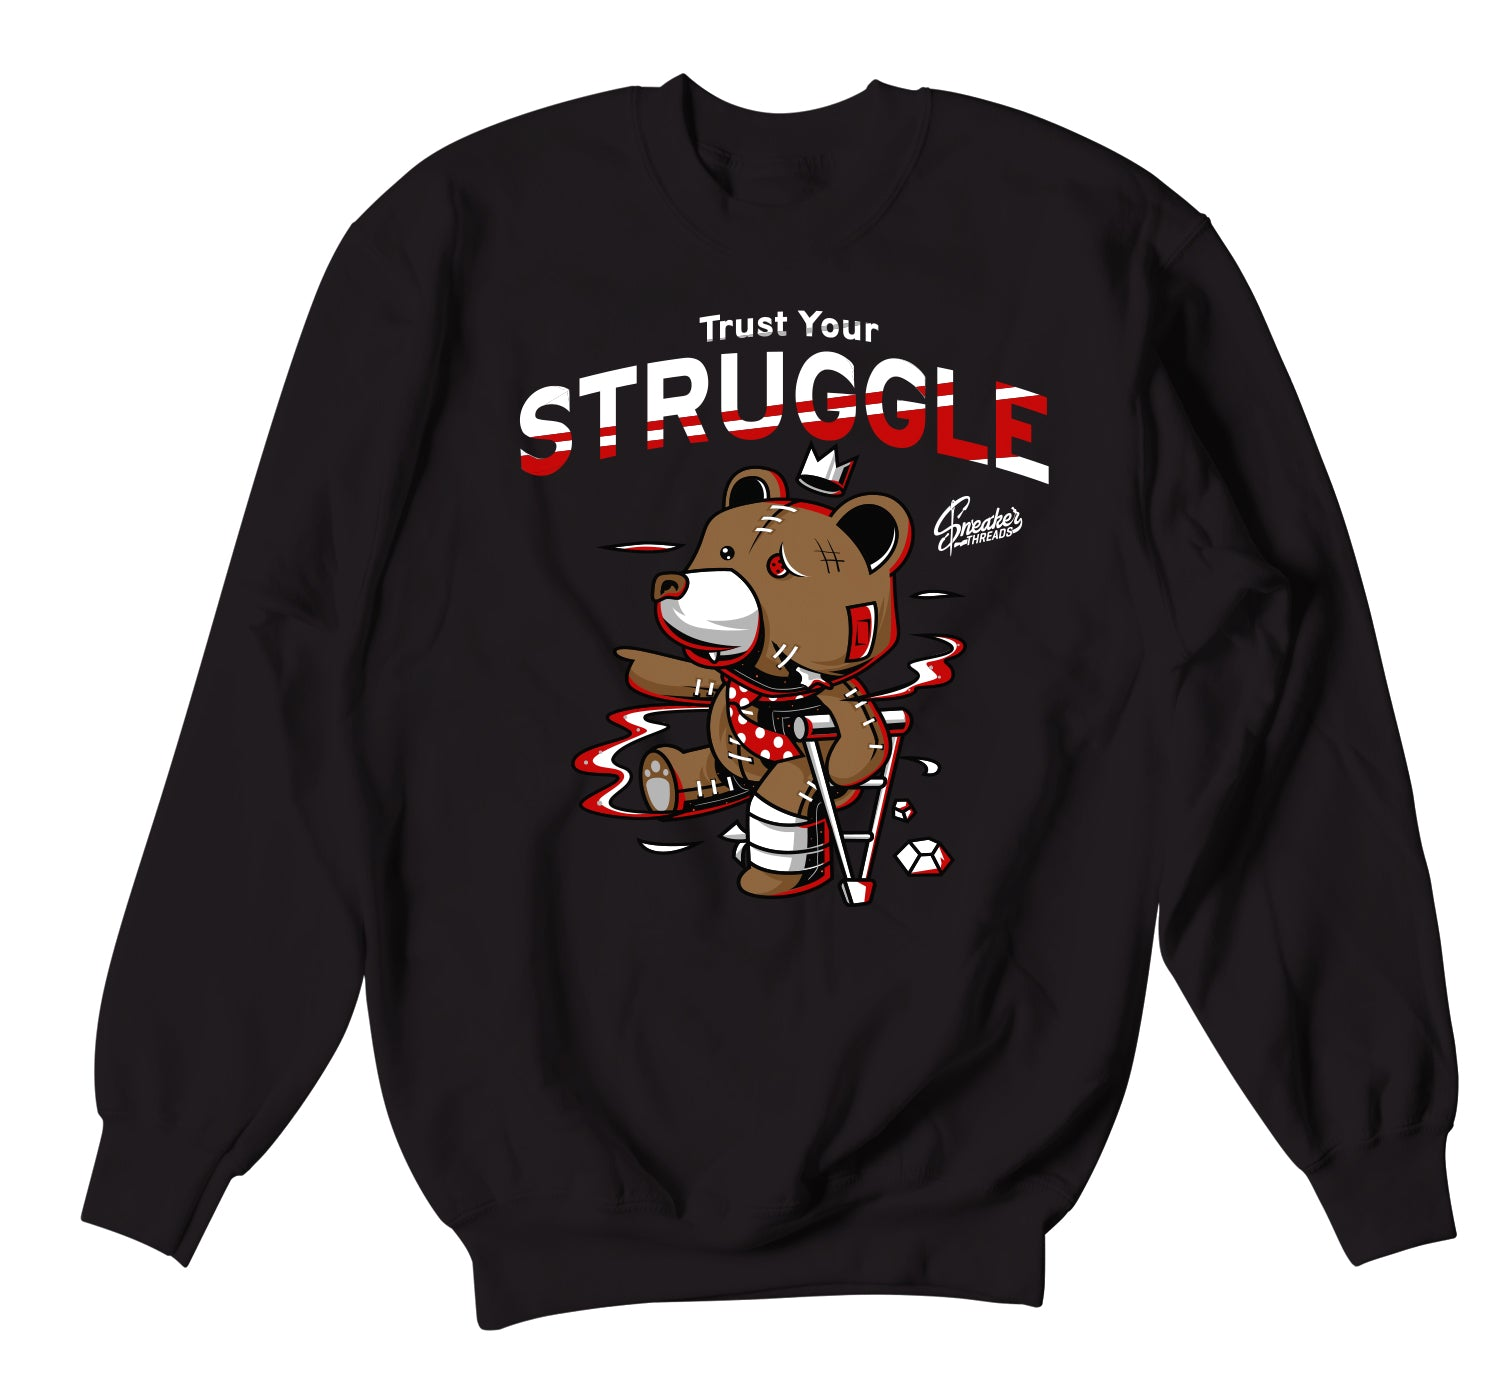 Jordan 6 Carmine Sweater - Trust Your Struggle - Black